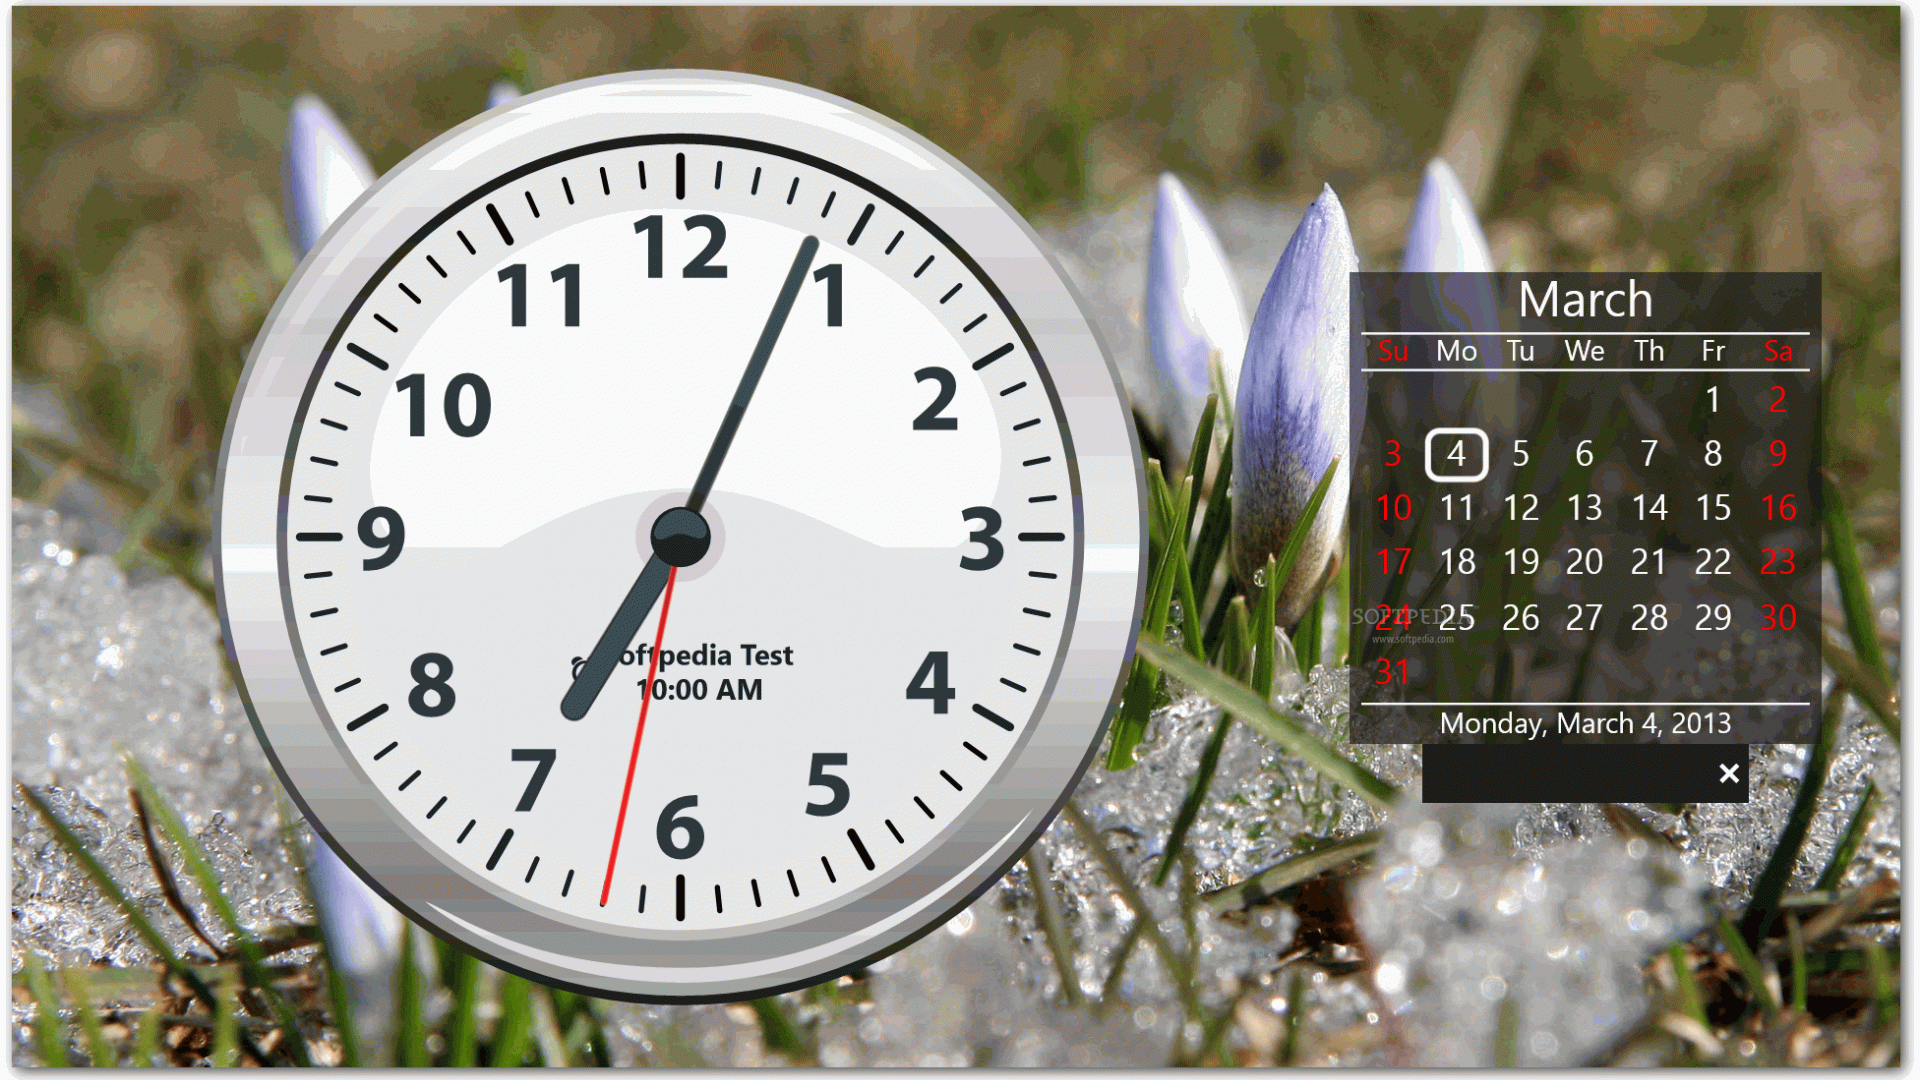 Free Download Jujuba Clock For Windows 8 Is A Clock And Time Management Application 1952x1112 For Your Desktop Mobile Tablet Explore 50 Digital Clock Wallpaper Windows 8 Windows 8